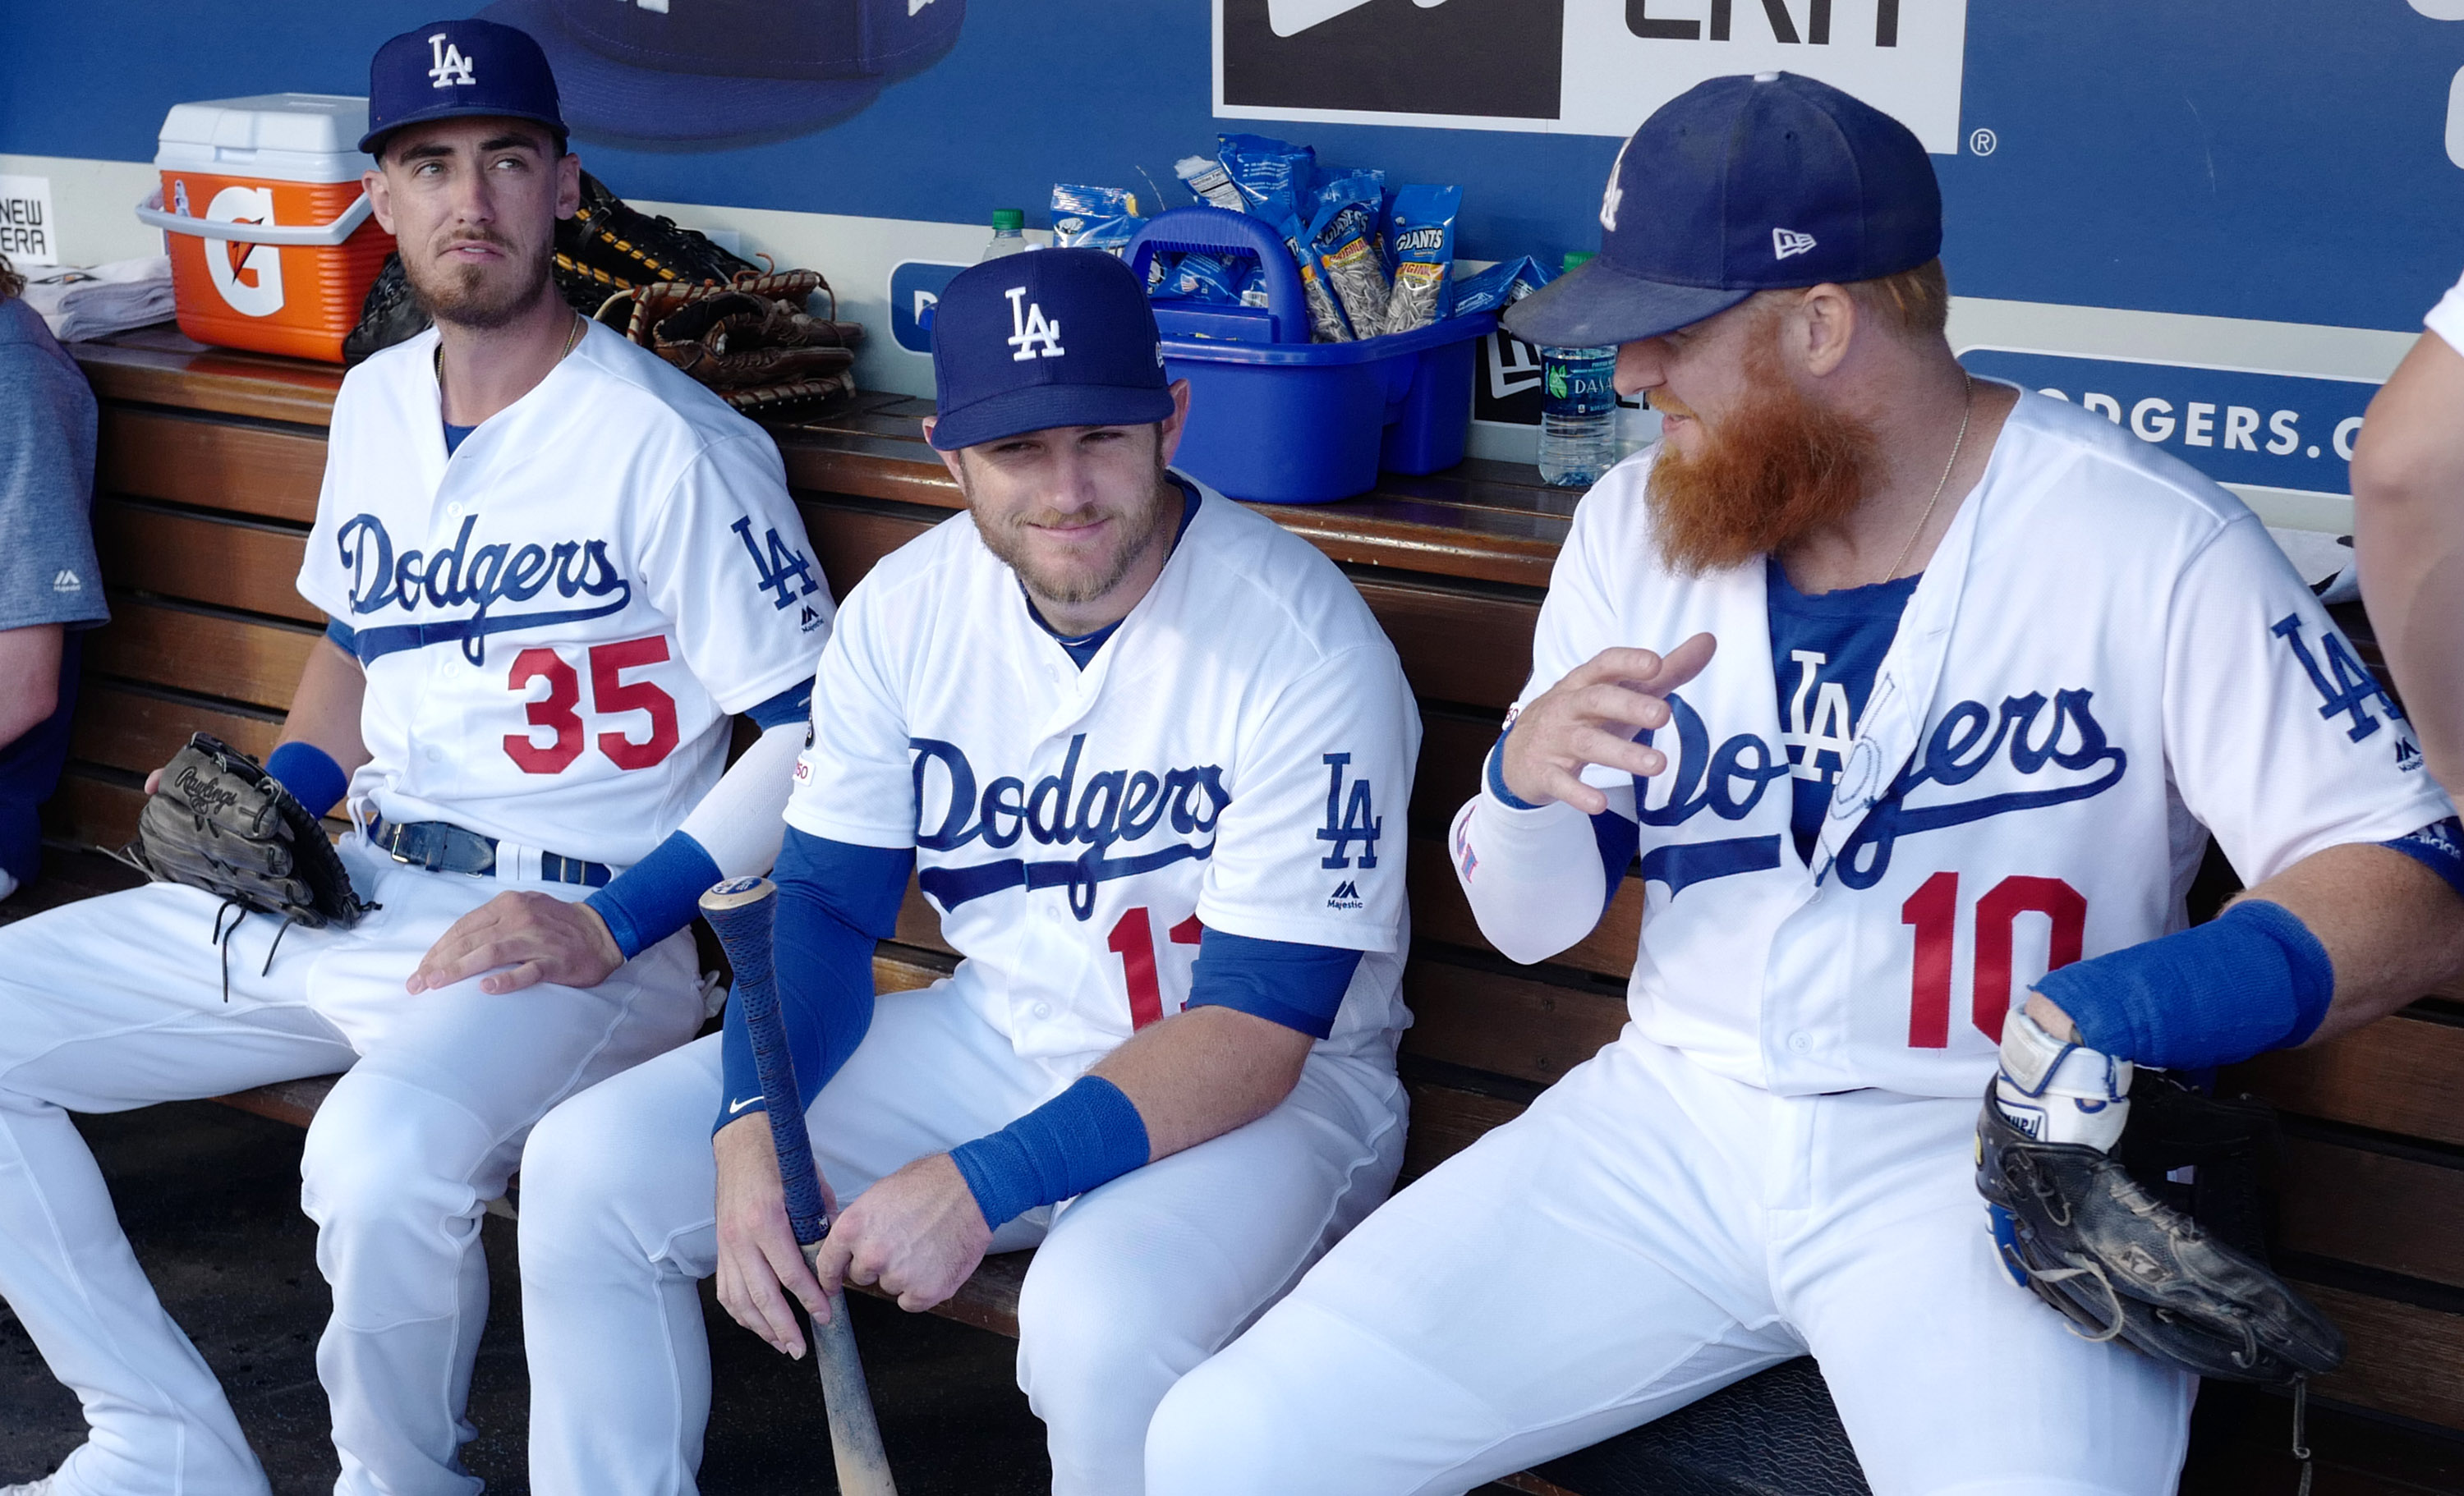 Check Out the Key Players for the Dodgers